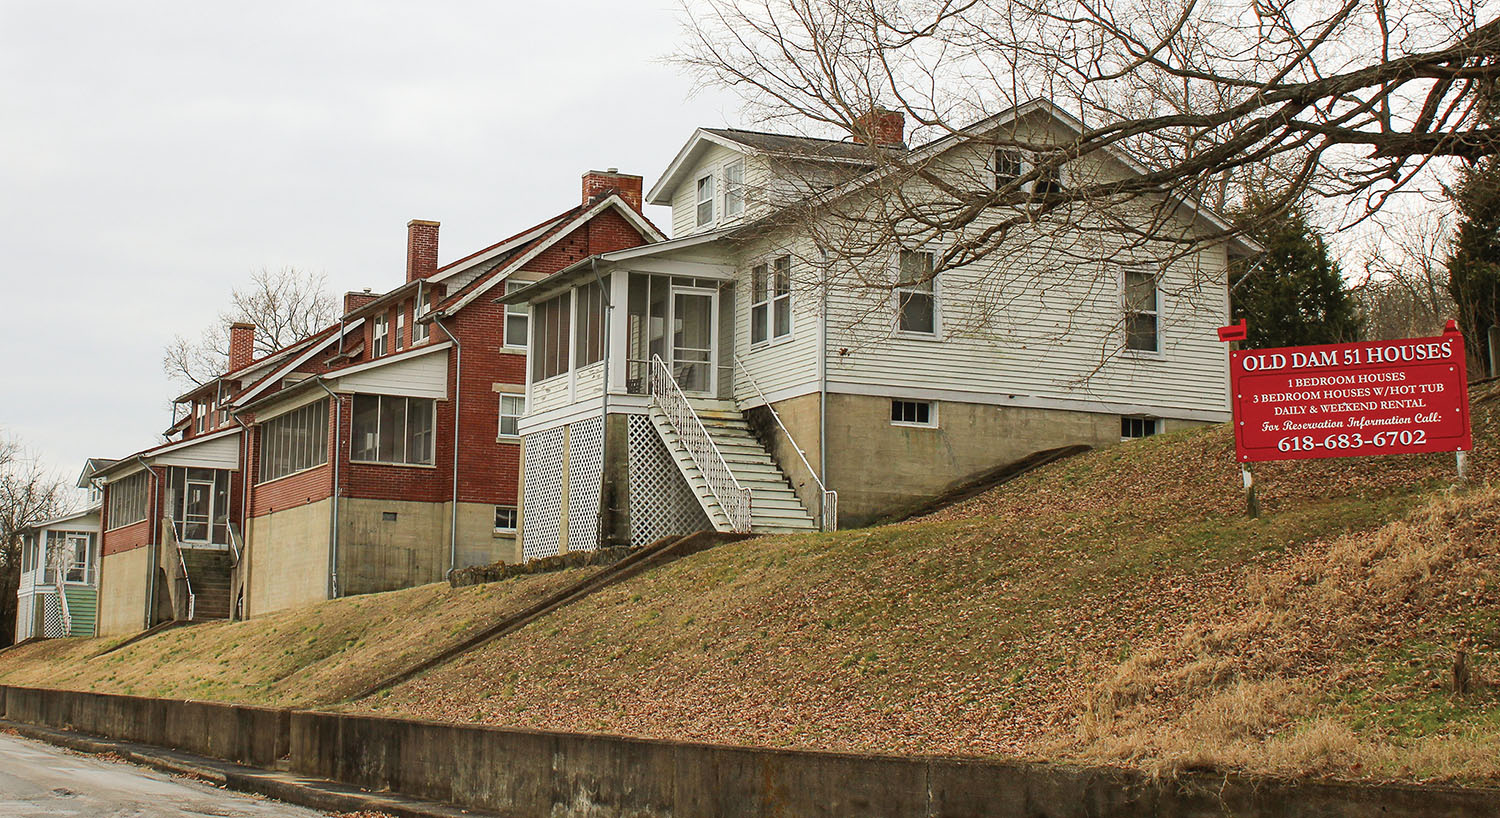 The four lockmaster houses at the former Lock and Dam 51 in Golconda, Ill., are 90 years old but getting a new life as short-term rentals on the website Airbnb.com. (Photo by Shelley Byrne)